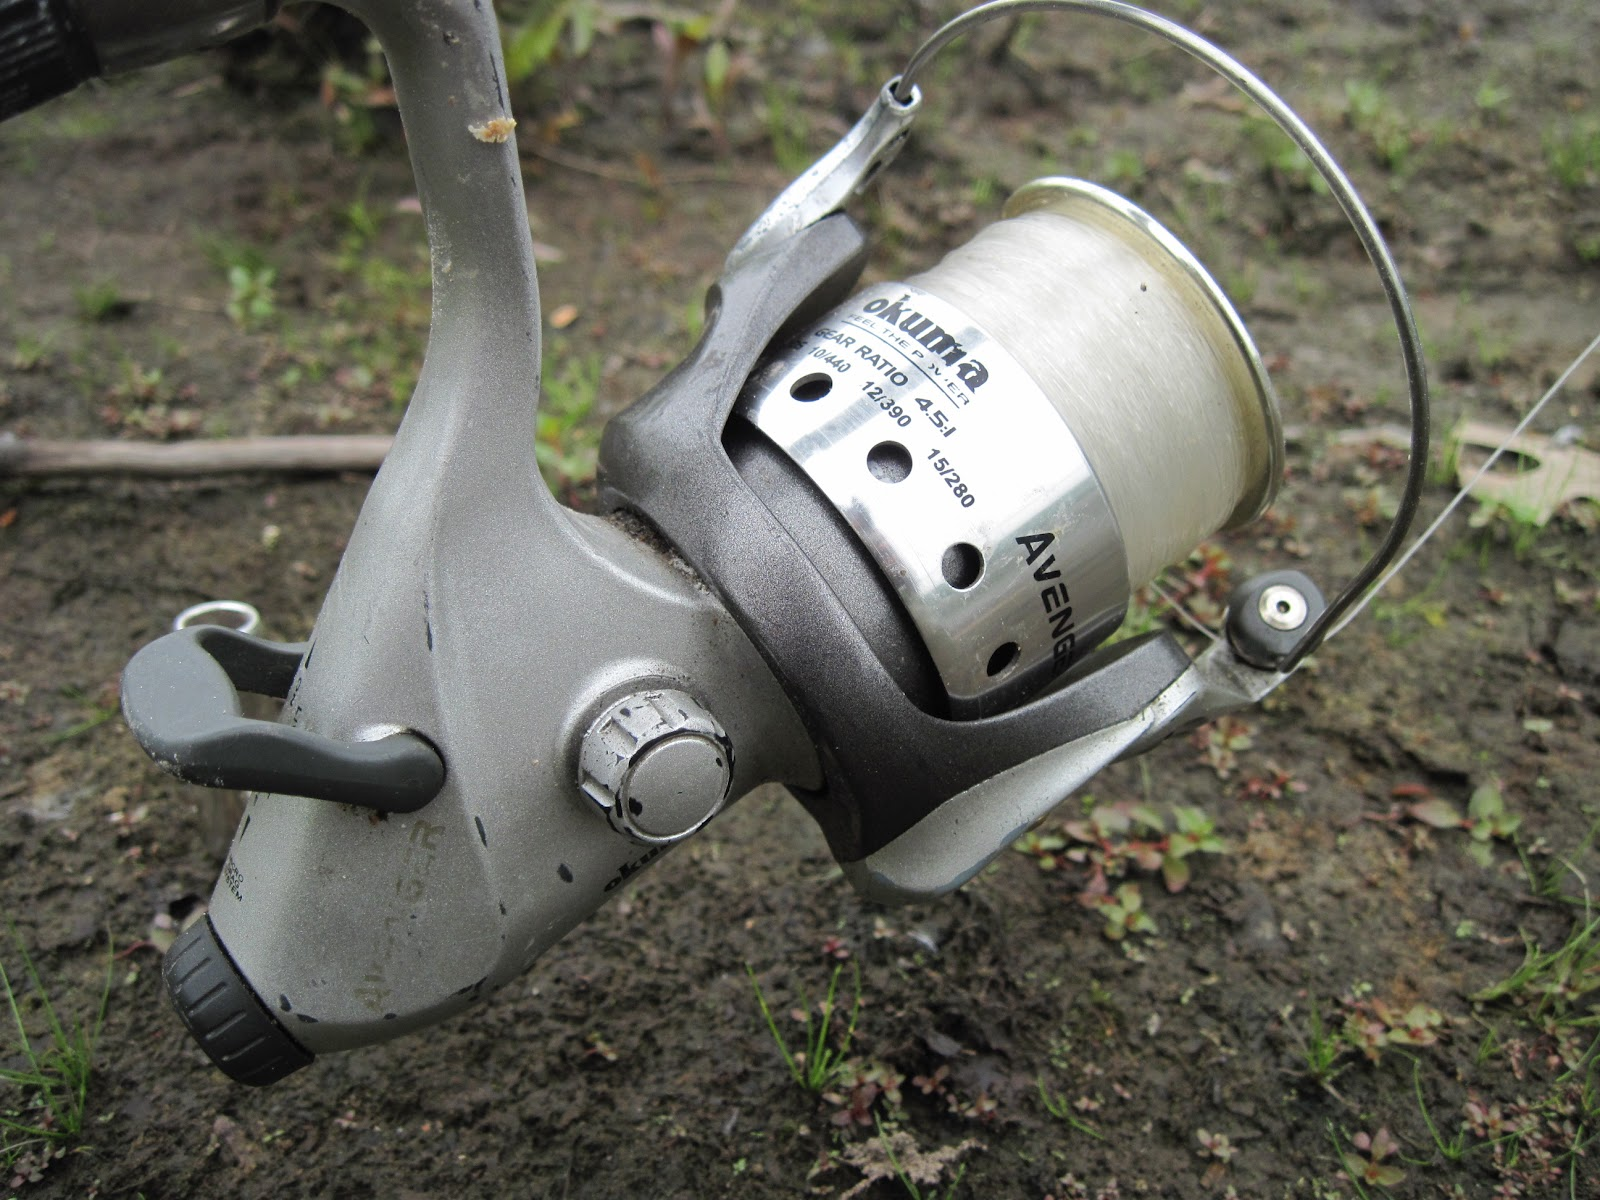 I notice the Okuma Avenger 50 is on sale at Dick's Sporting Goods this week  for $39. That is a fantastic price for this reel. I consider this reel to  be a